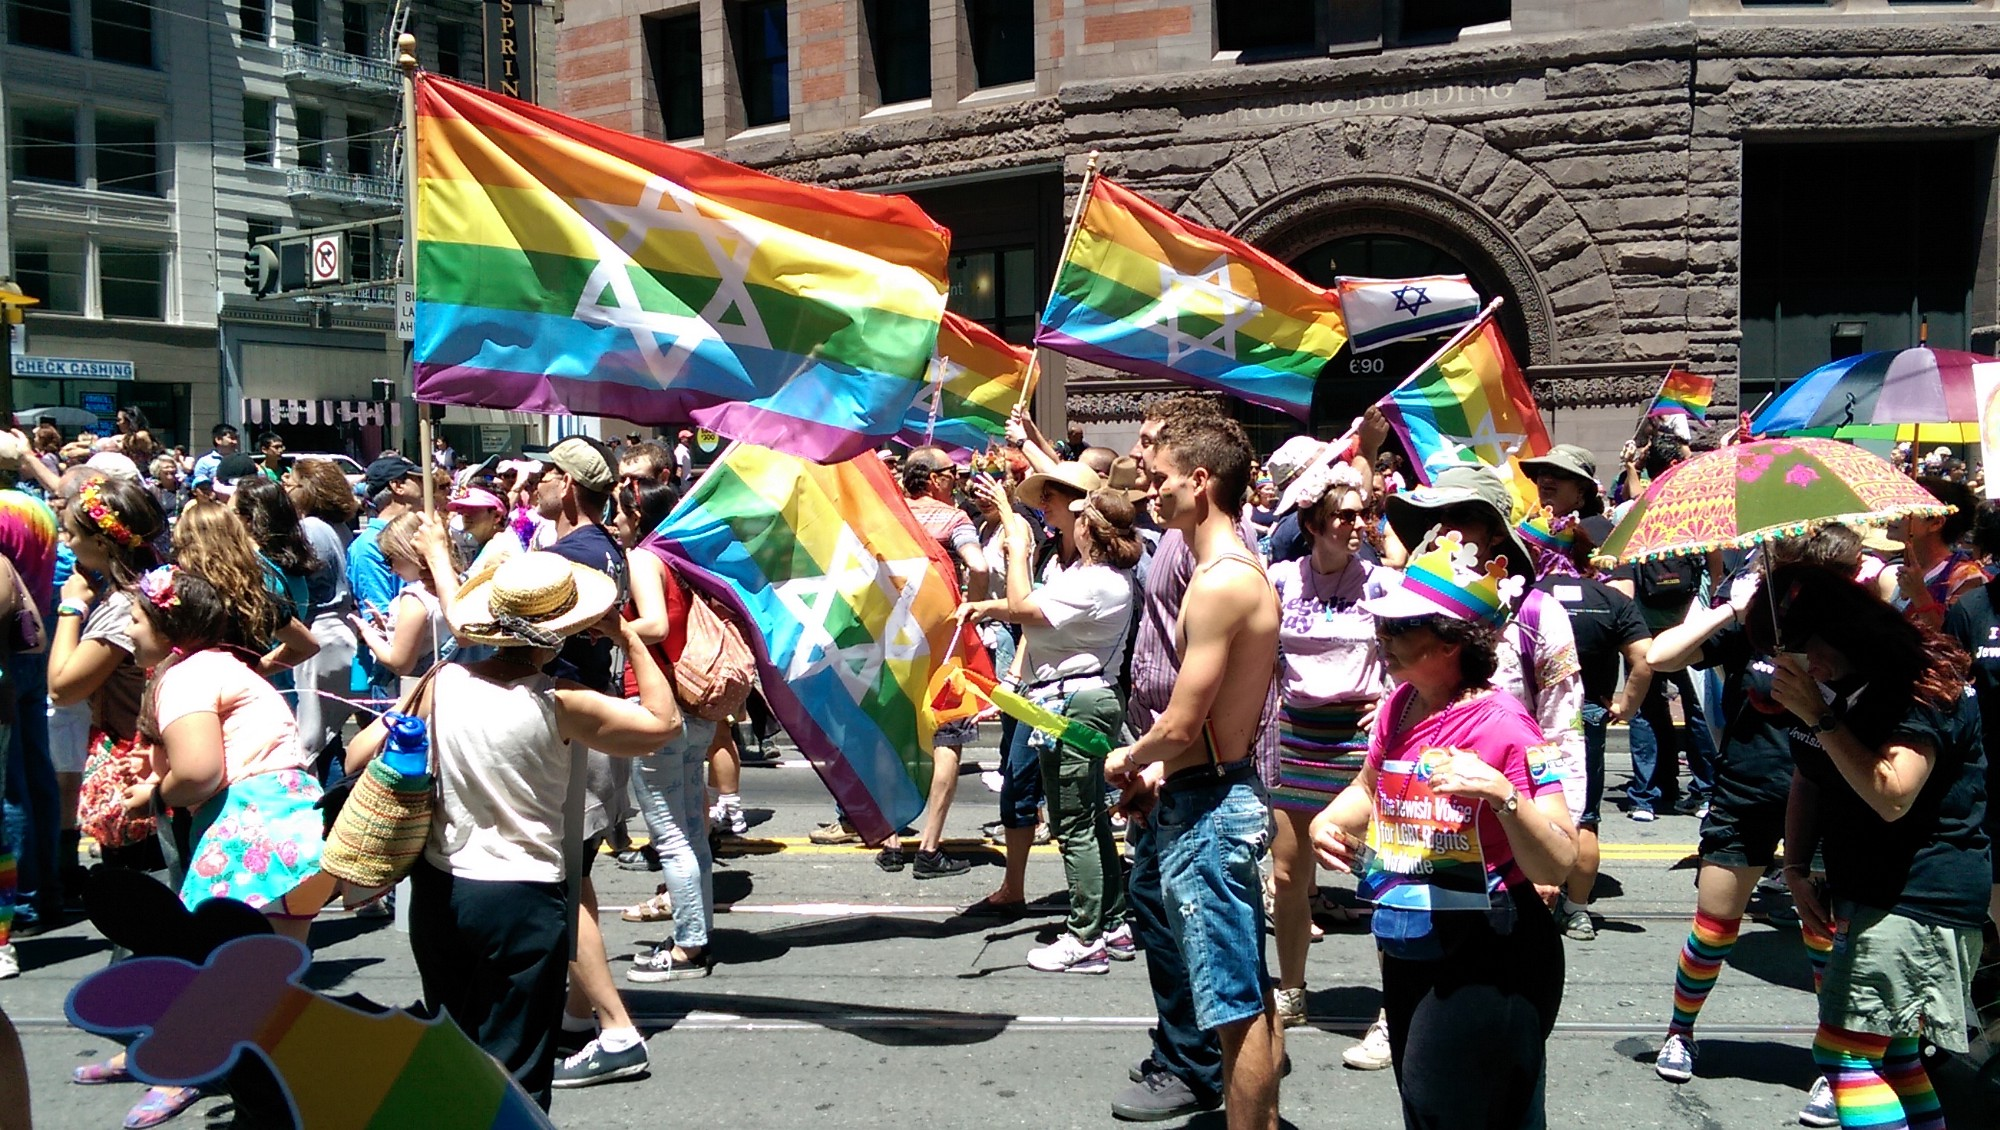 25 facts about San Francisco Pride Parade